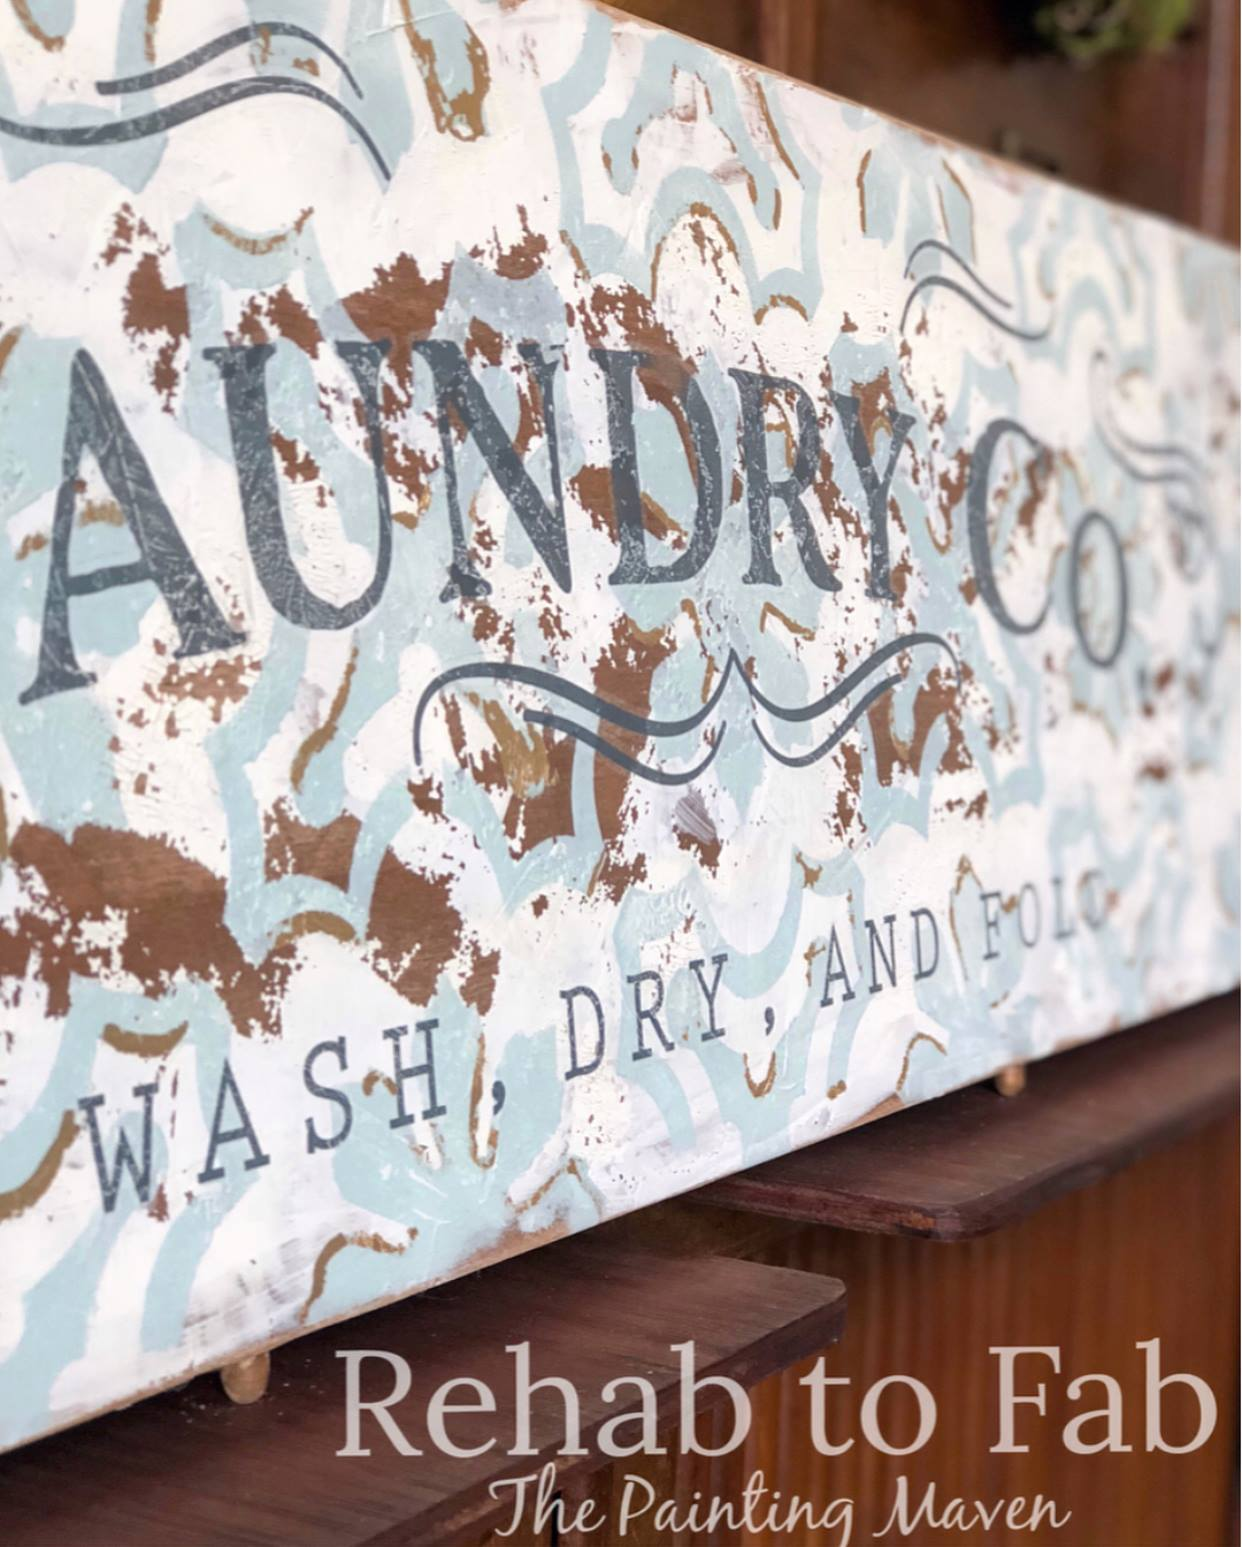 Stephanie from Rehab to Fab has another amazing project to share with our readers, using the new [re]design transfer, stencil (being released in May) and fun mediums from The Plaster Paint company and more...She transformed an old table leaf into a beautiful sign for her home.  A while back, Stephanie created a beautiful Farmhouse sign for us, featured here on the blog, so you may want to  check that out too.   You are going to love her techniques and ideas for this project today, so read on [re]designers!